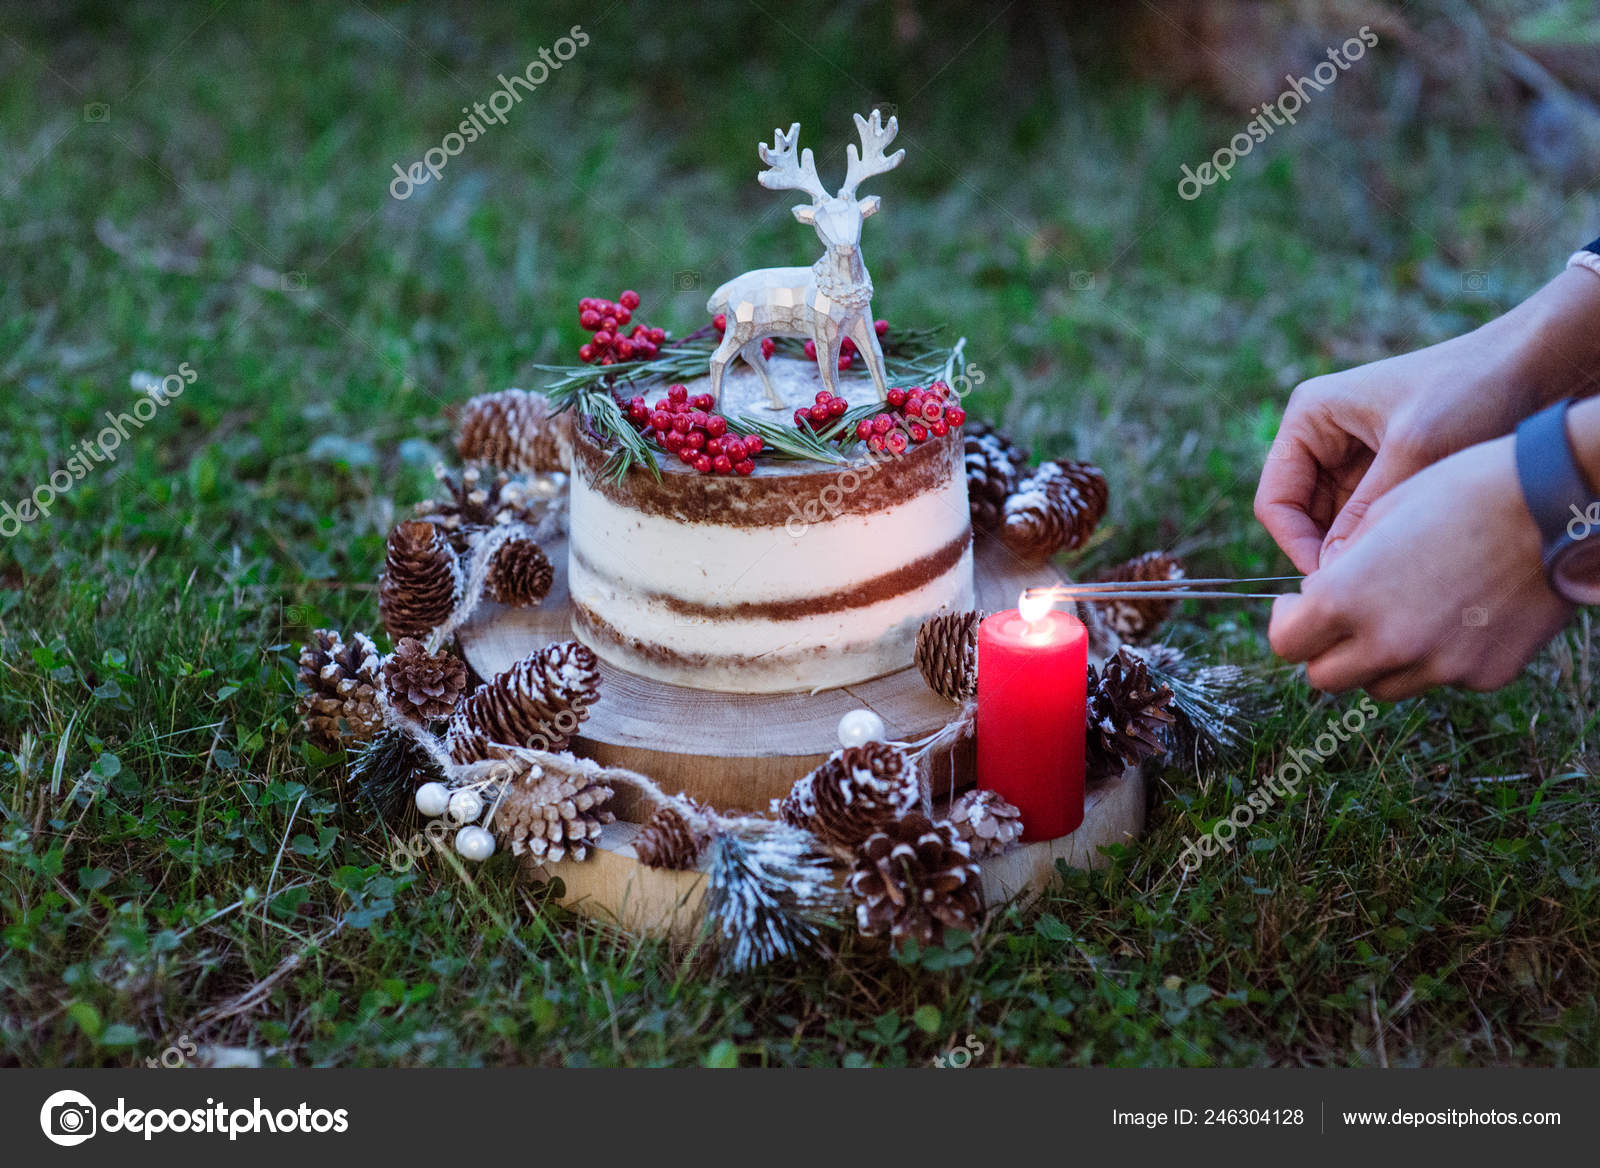 Christmas Birthday Cake.Naked Christmas Birthday Cake Rustic Layer Homemade Cake